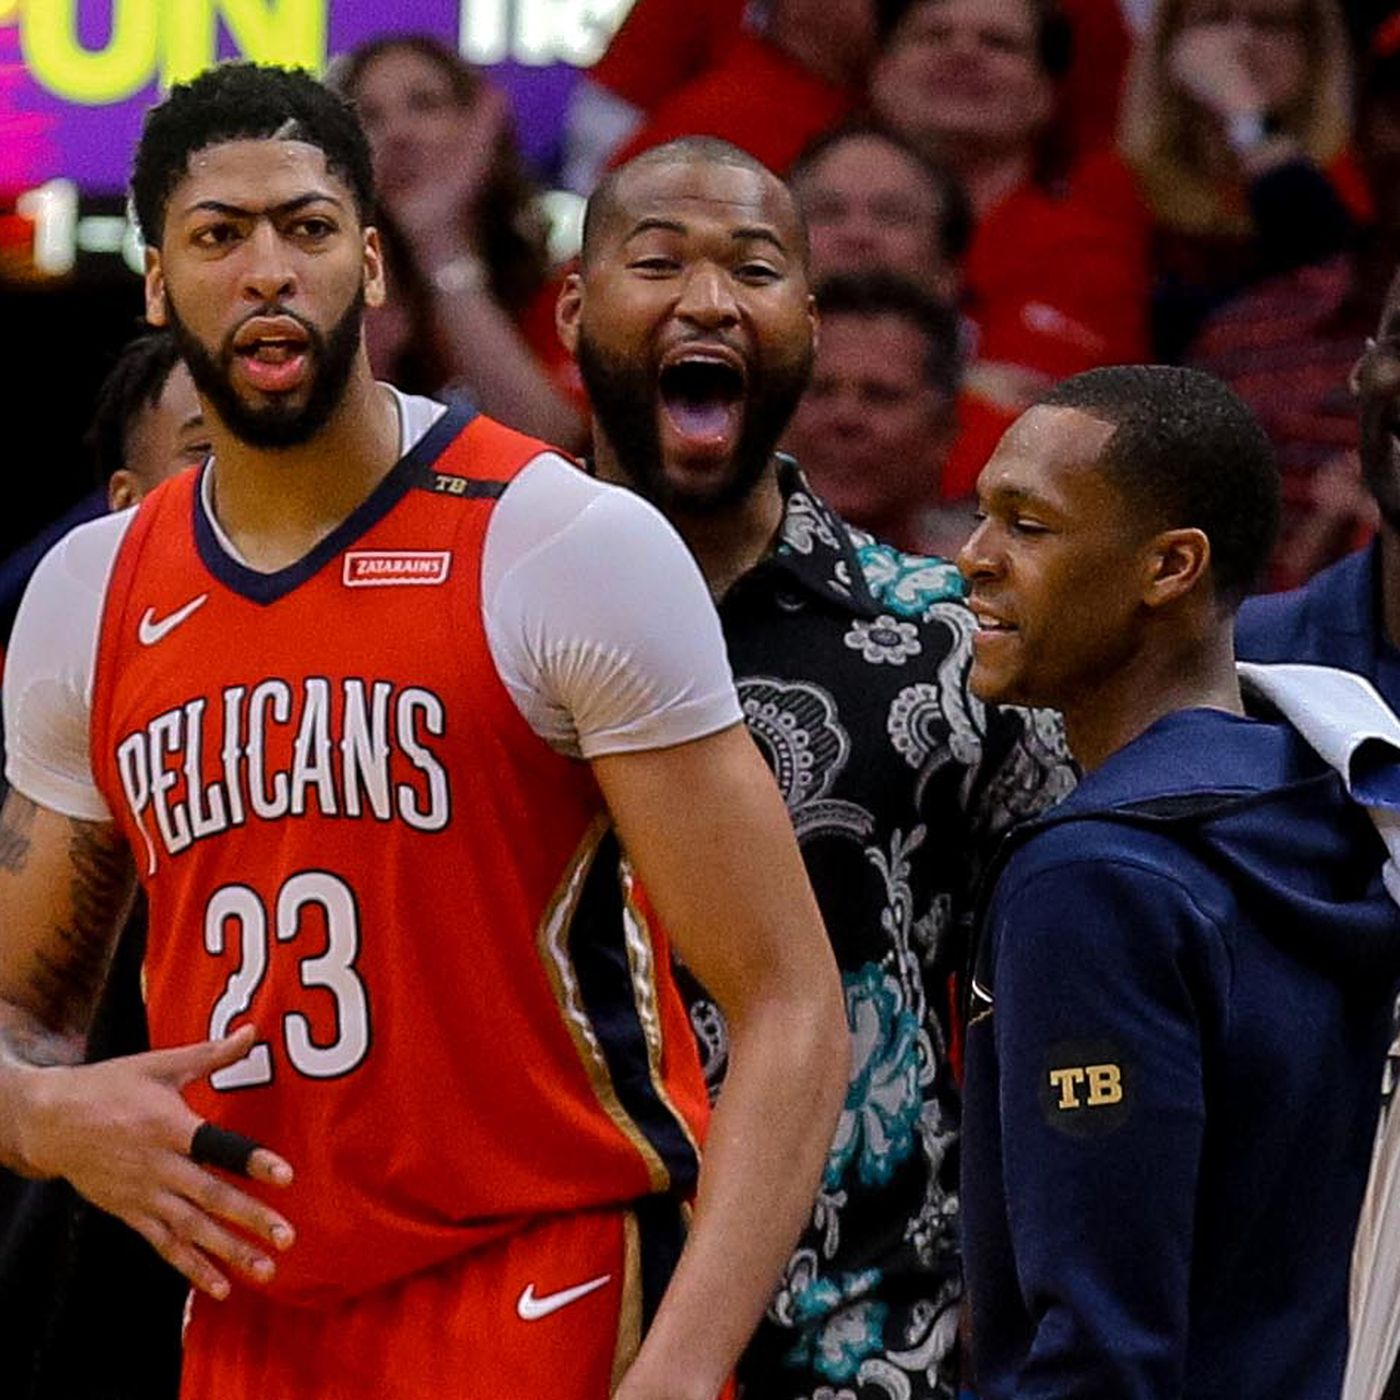 9c7941545e9 2018 NBA Playoffs  The day the Pelicans finally became New Orleans   basketball team